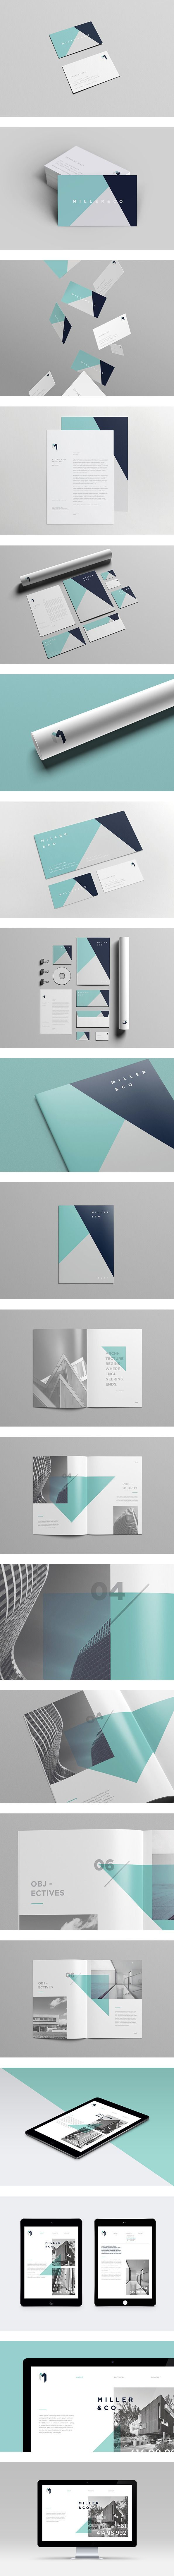 Complete identity for Miller & Co, a fictional architecture firm. Miller & Co is a young team of multi award winning architects based in Sydney, Australia. They specialise in residential and commercial projects of high quality and detail which are sensitive to context.   by sudio 361  #branding #identity